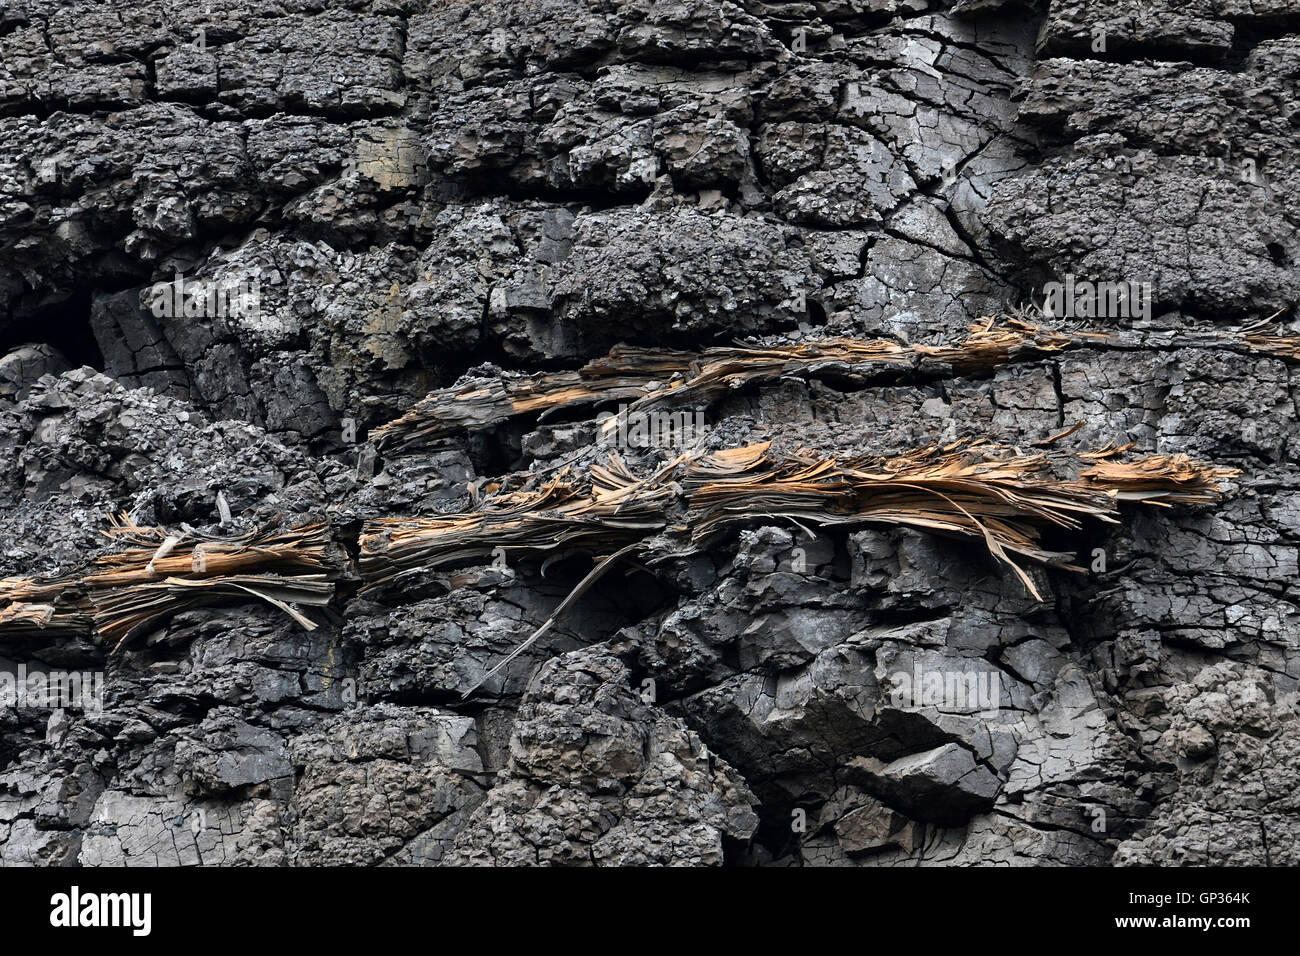 Xyloid Lignite, compressed fossil wood in brown coal / Fossile Holzstämme, Lignit, eingelagert in Braunkohle. - Stock Image